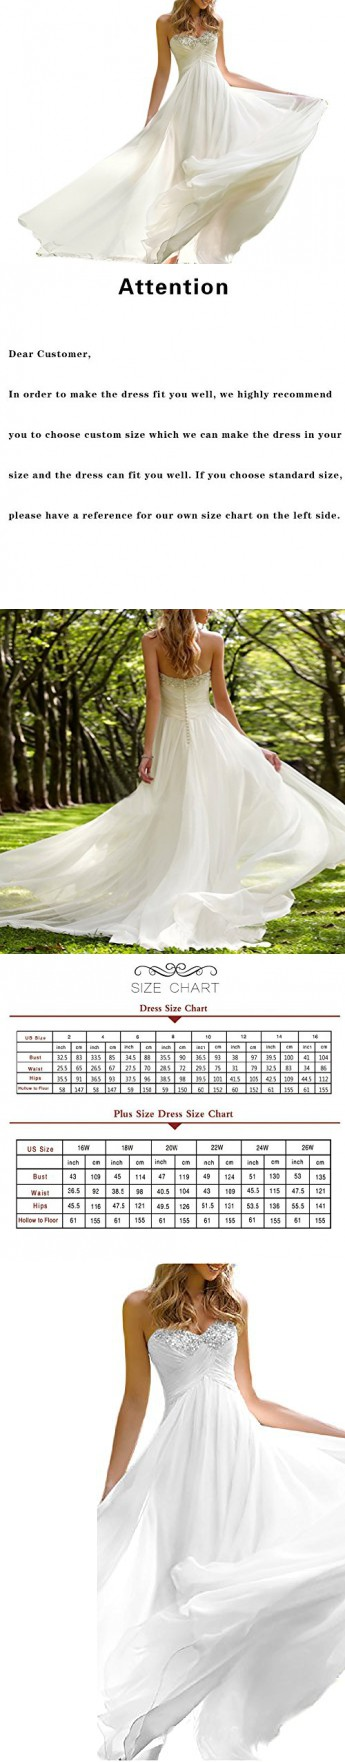 d2101df63a3 Favors Dress Women s Sweetheart Beach Wedding Dress Bead Bridal Gown Empire  White B 12